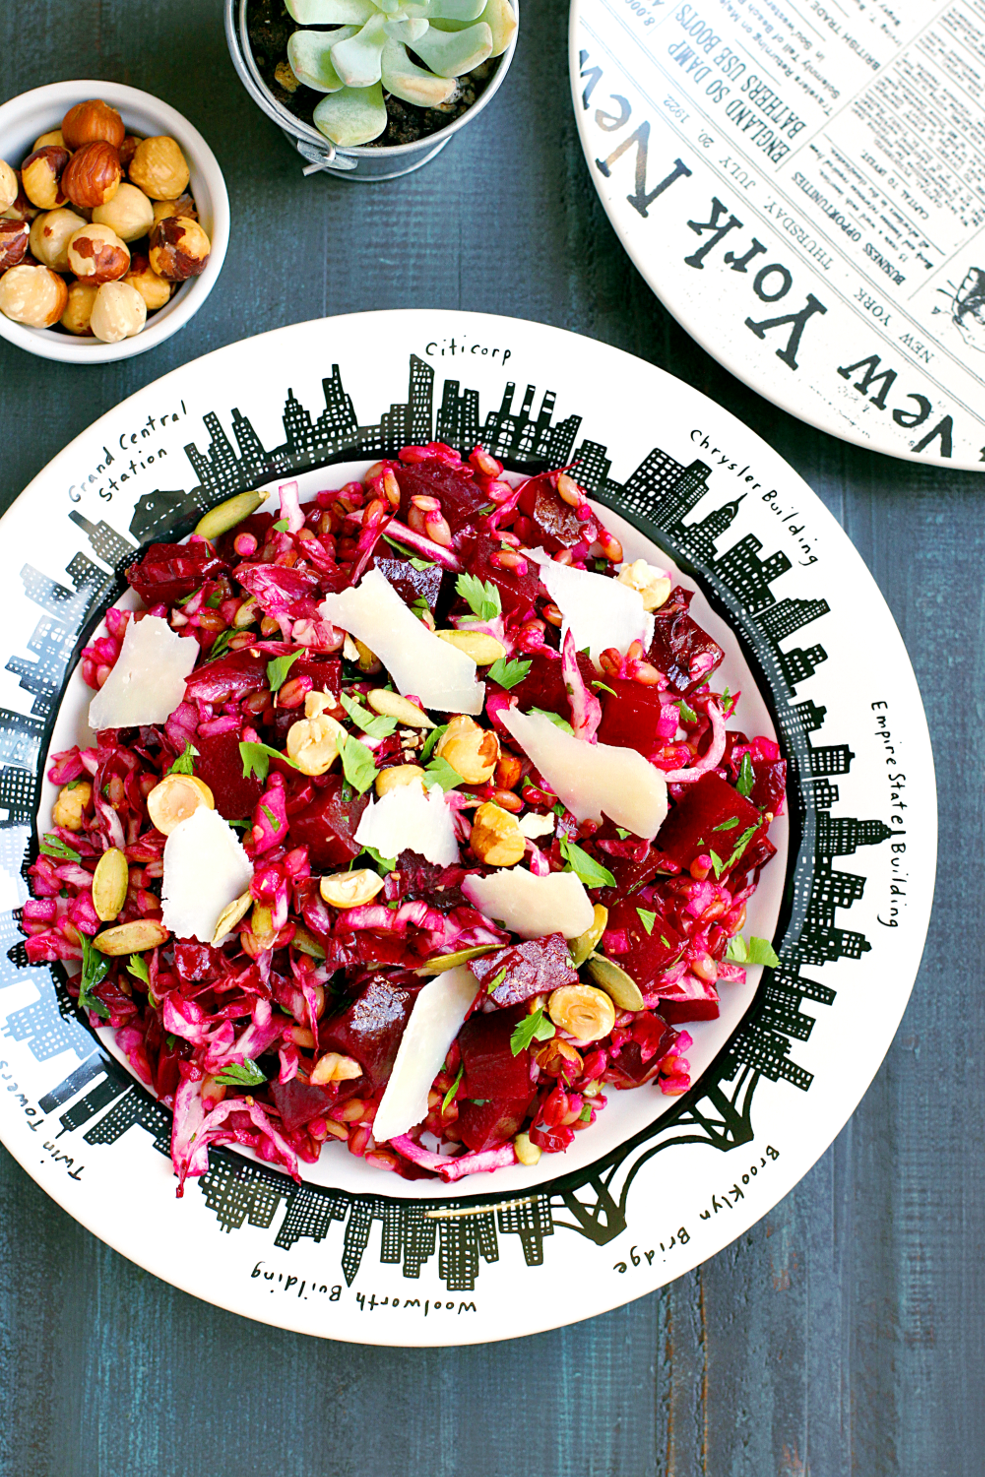 Image of roasted beet and barley salad from the top.